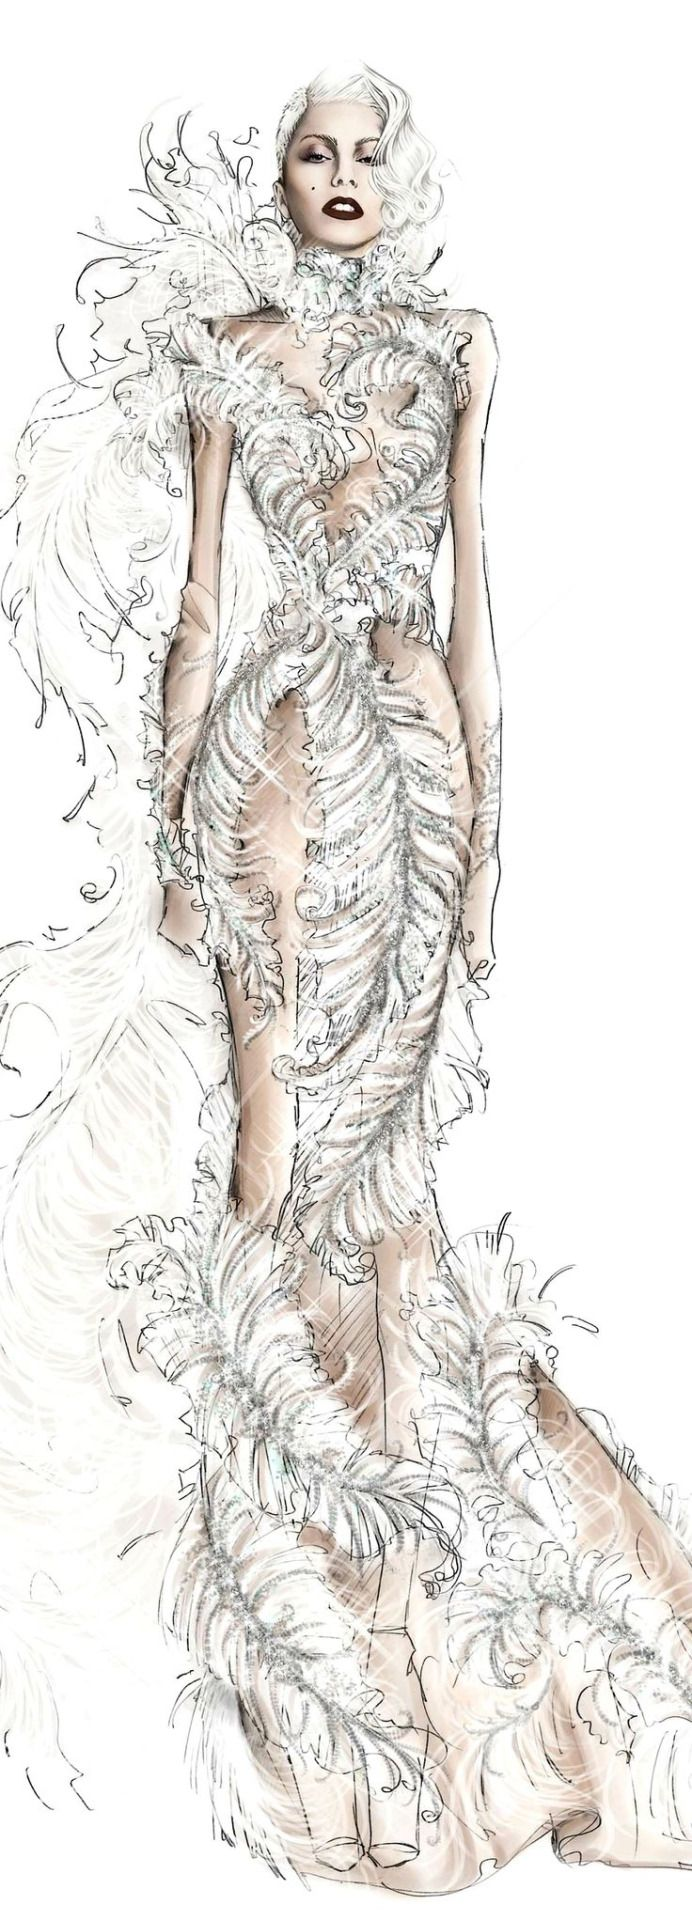 Lady GAGA Fashion Illustrations  Roberto Cavalli for Lady Gaga Cheek to Cheek| Be Inspirational ❥|Mz. Manerz: Being well dressed is a beautiful form of confidence, happiness & politeness